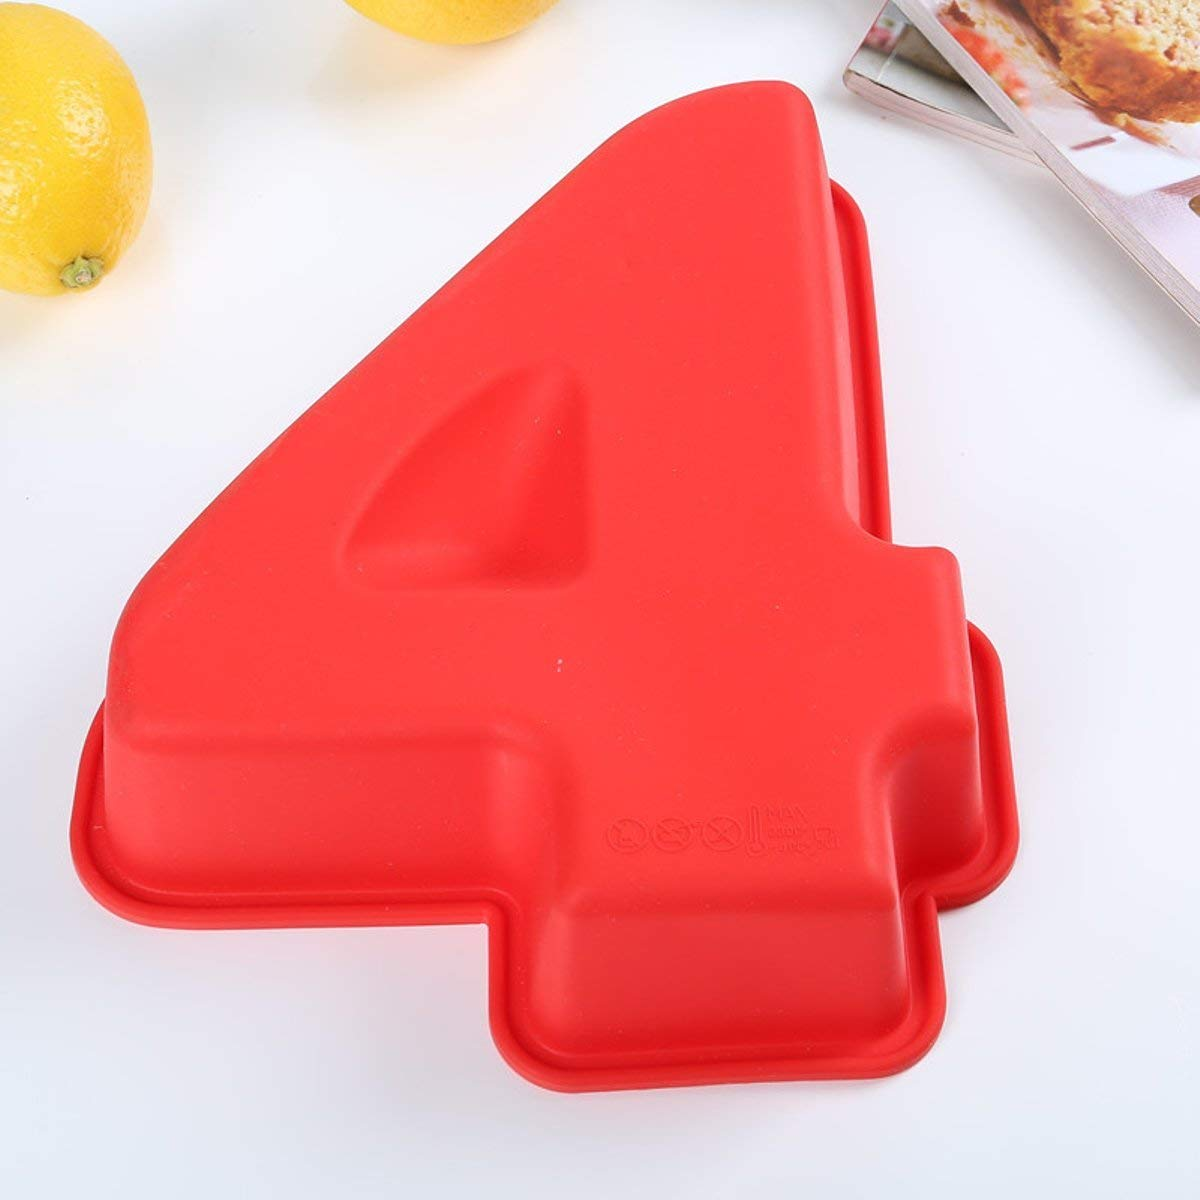 Numbers Mold Silicone -100% food grade Large Silicone Number 4 Cake Mould Pan Baking Tin Birthday Anniversary 4th